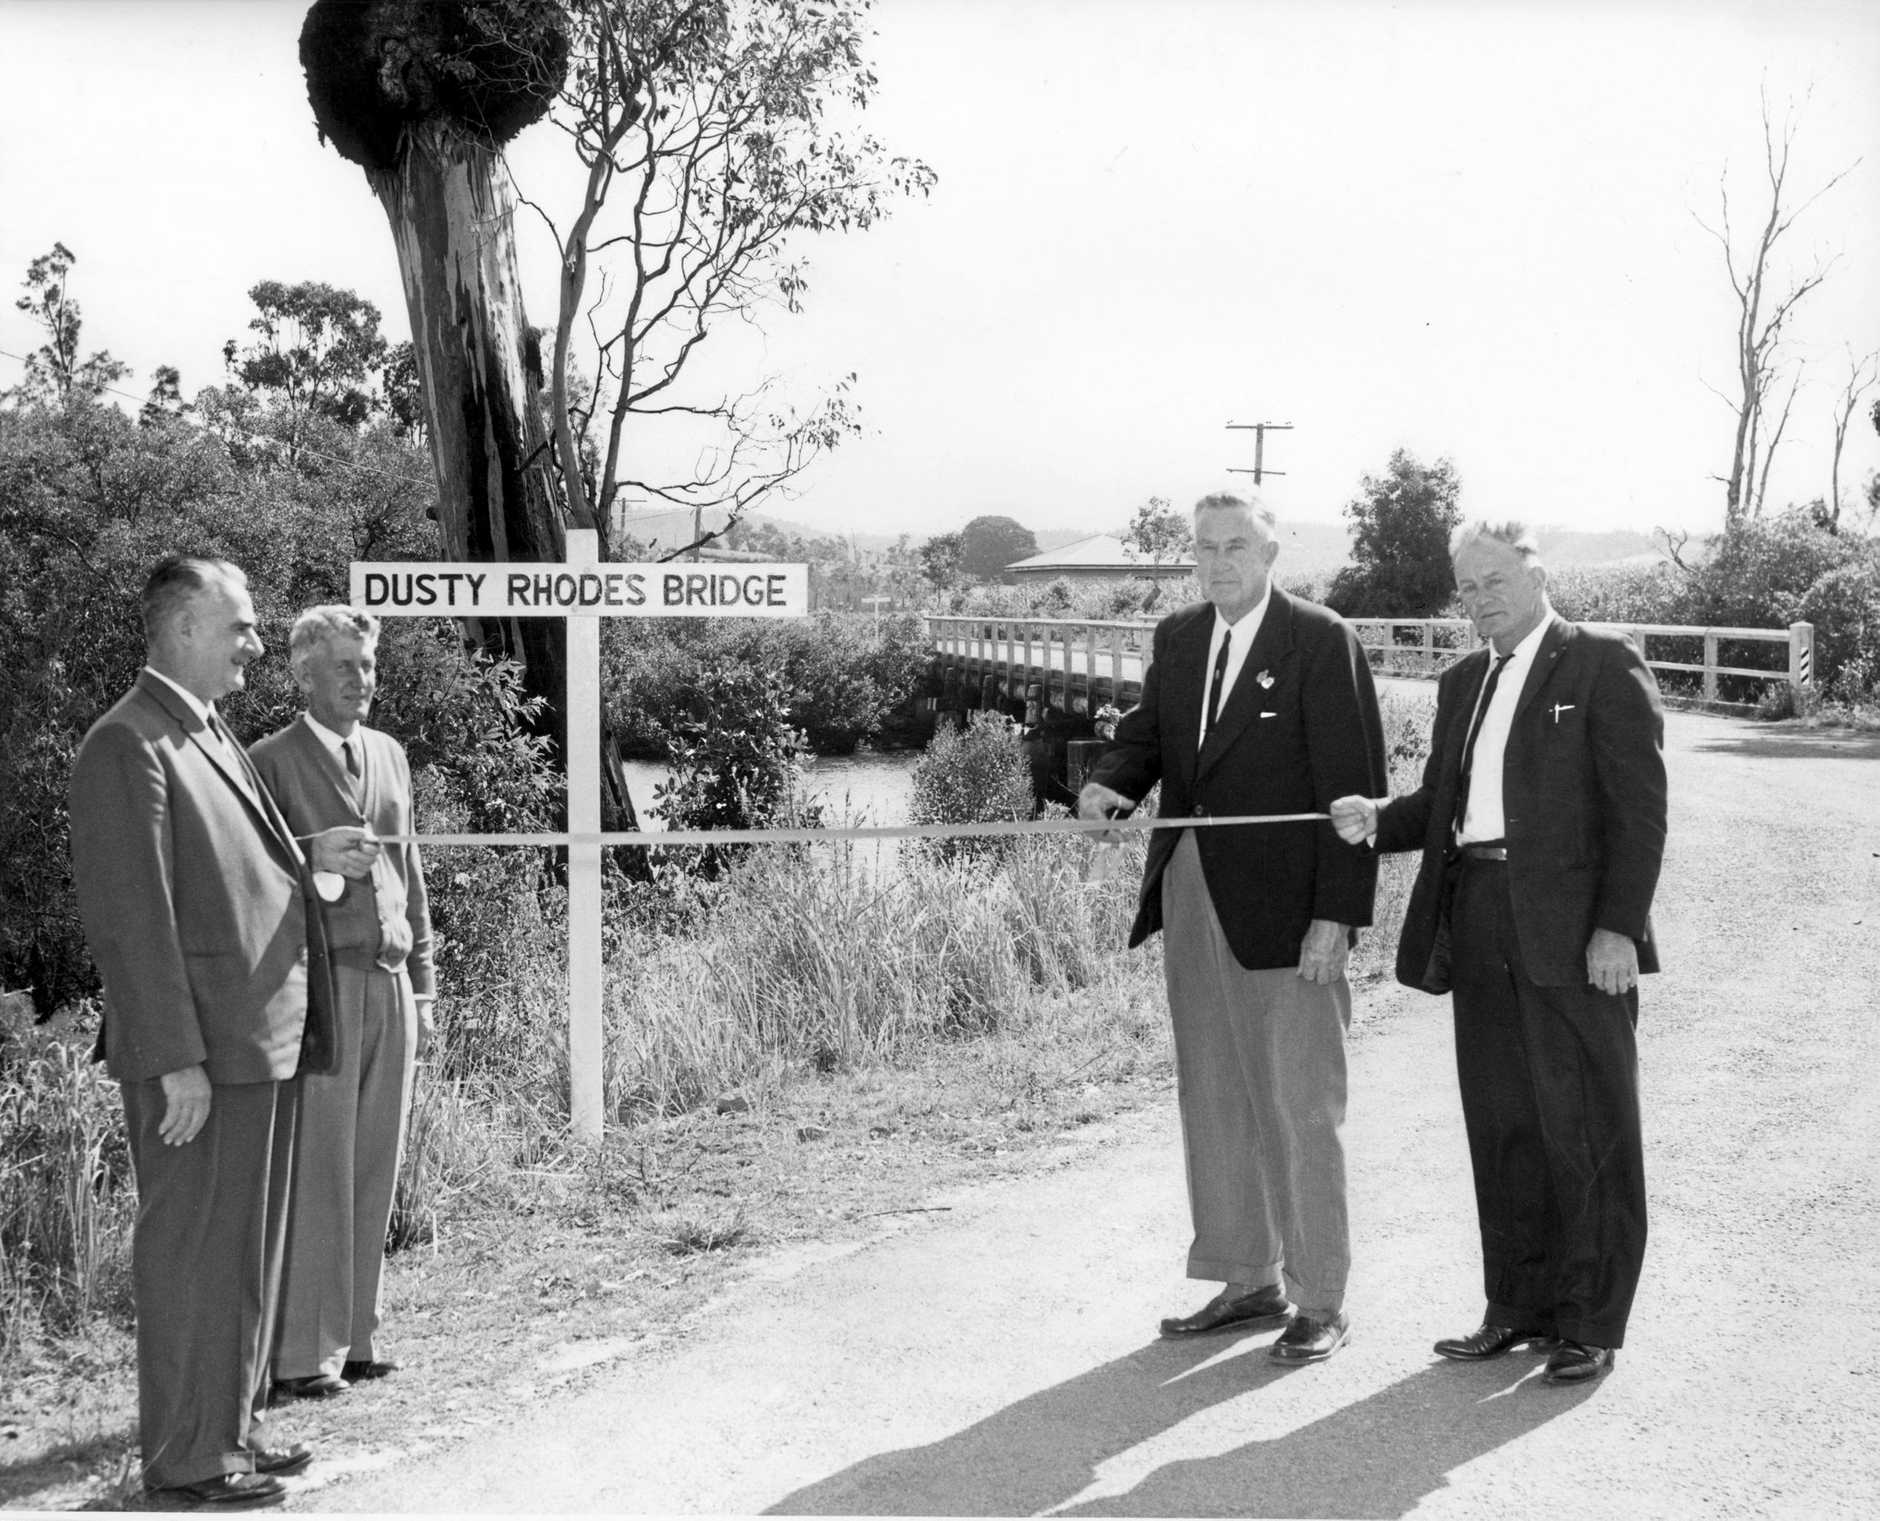 M198404 Official naming of the 'Dusty Rhodes Bridge' over Paynters Creek, Bli Bli, on 29 May 1964.